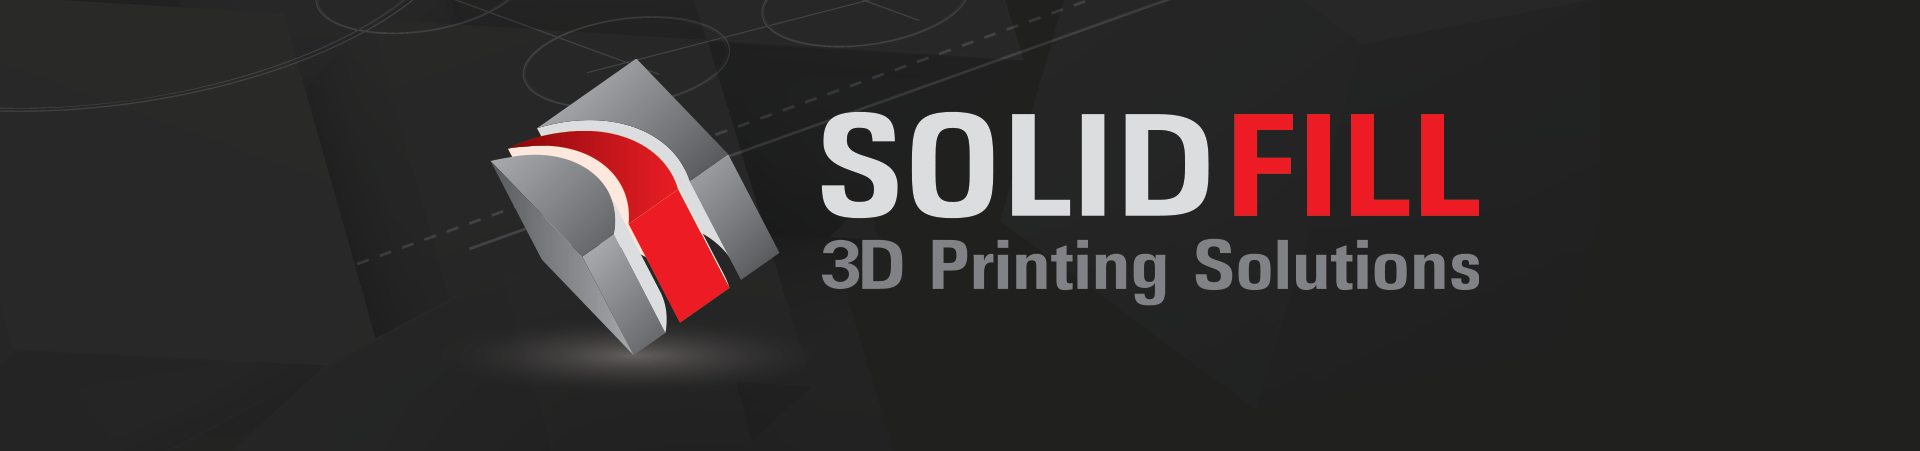 Soliffill 3D Printers